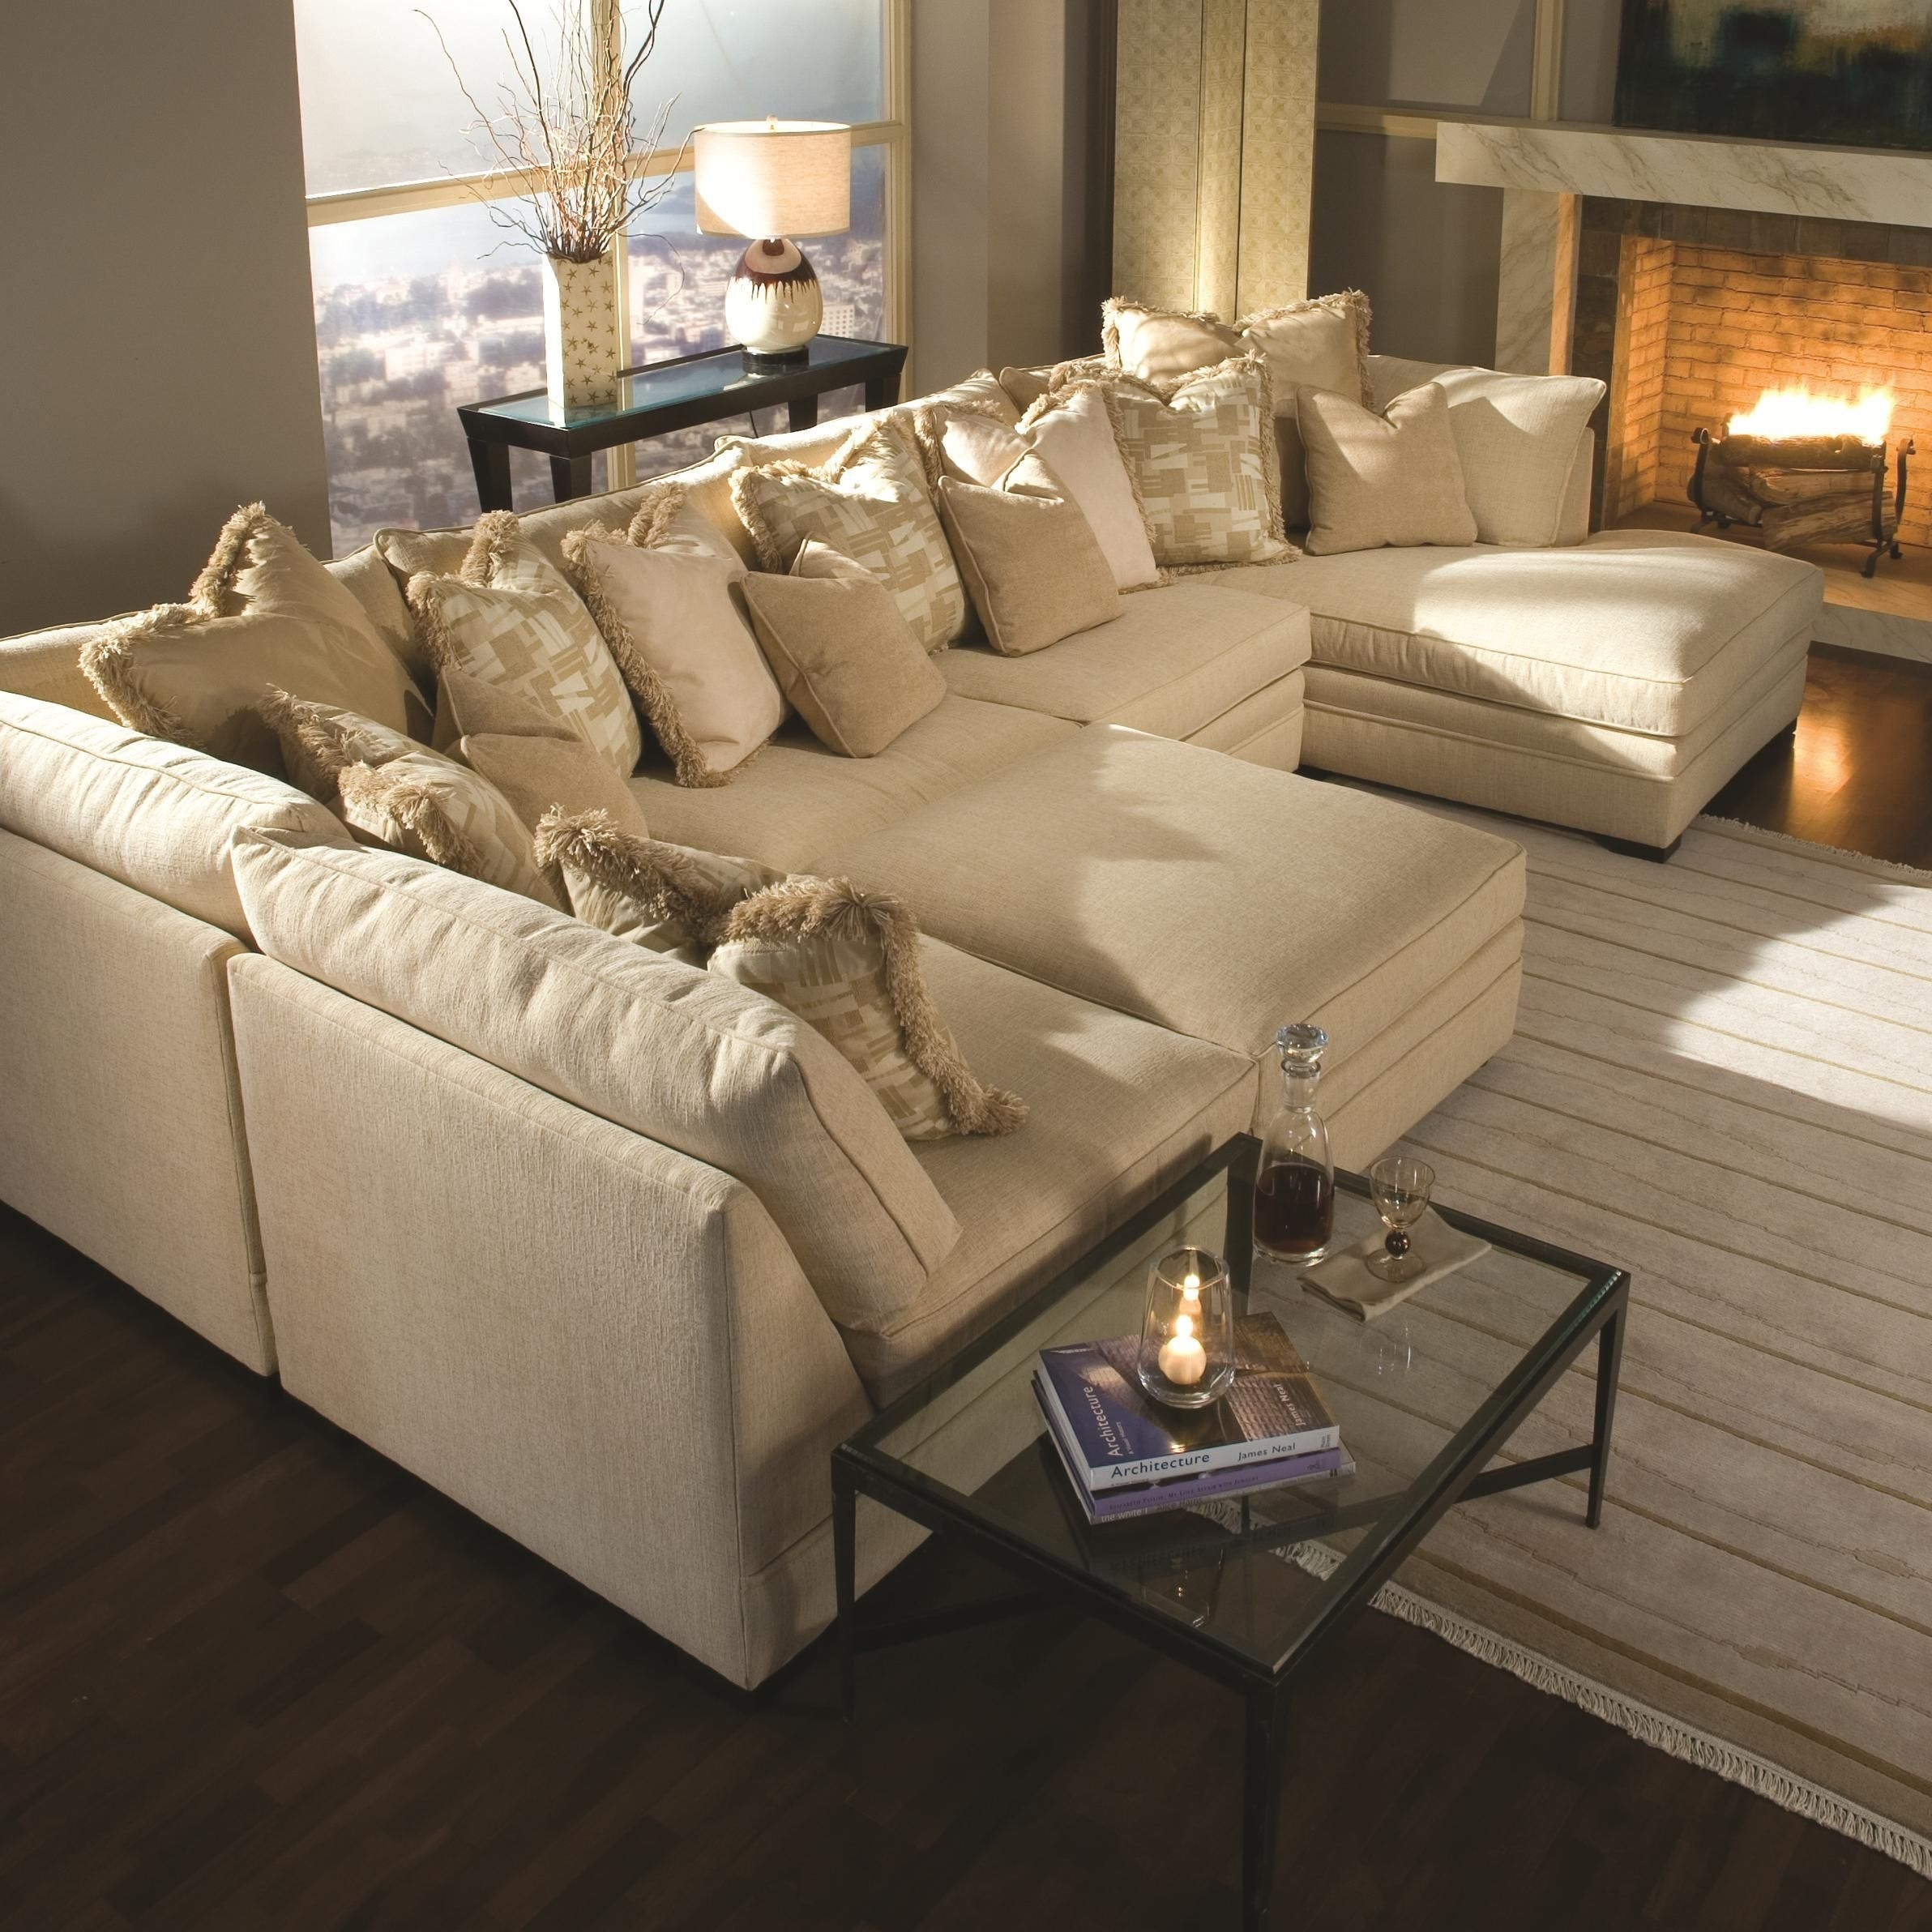 Large Brown Leather U Shaped Sofa – Google Search | Movie Room In Huge U Shaped Sectionals (View 8 of 15)